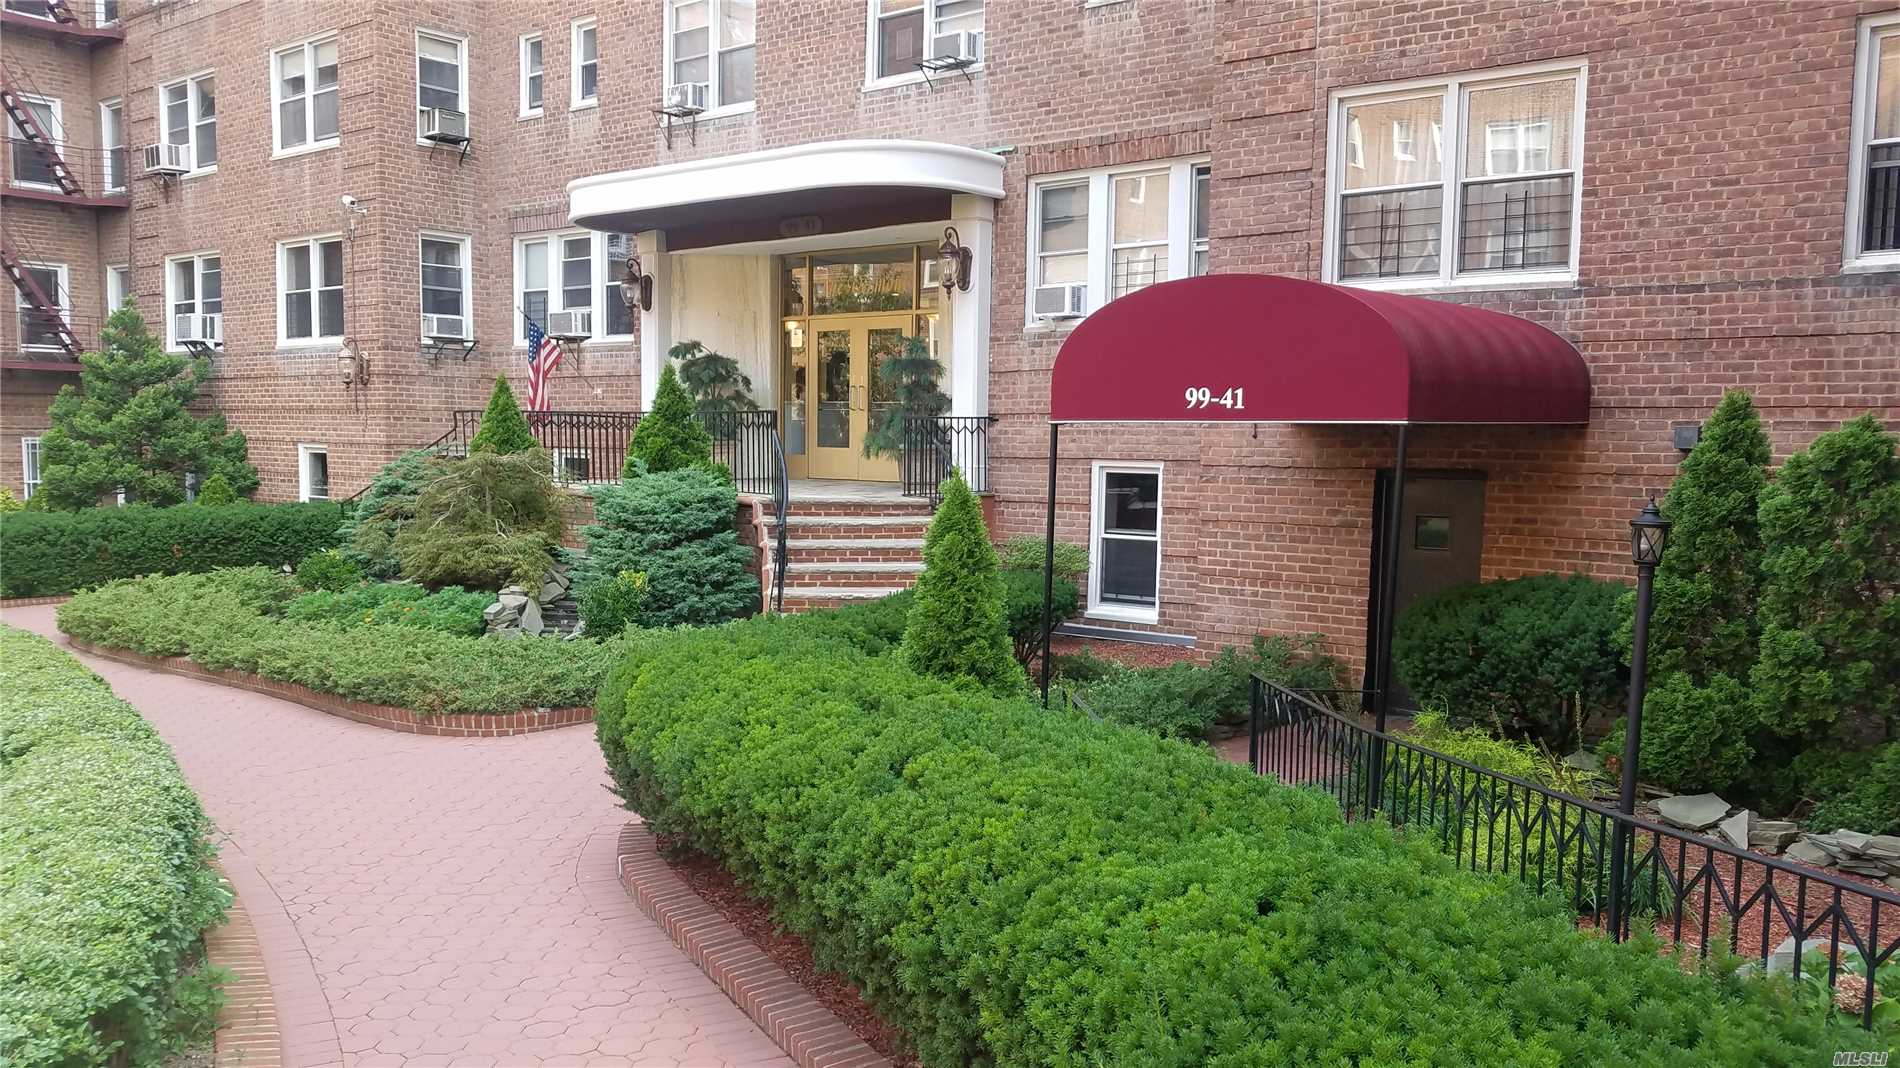 This Is A Beautiful 1 Bedroom Apartment, Prime Location In Rego-Park, Well Maintained Building With Part Time Doorman, Big Living Room, Dining Area, King Size Master Bedroom, Plenty Of Closet Space, Hardwood Floors, Nearby Shops And Transportation.